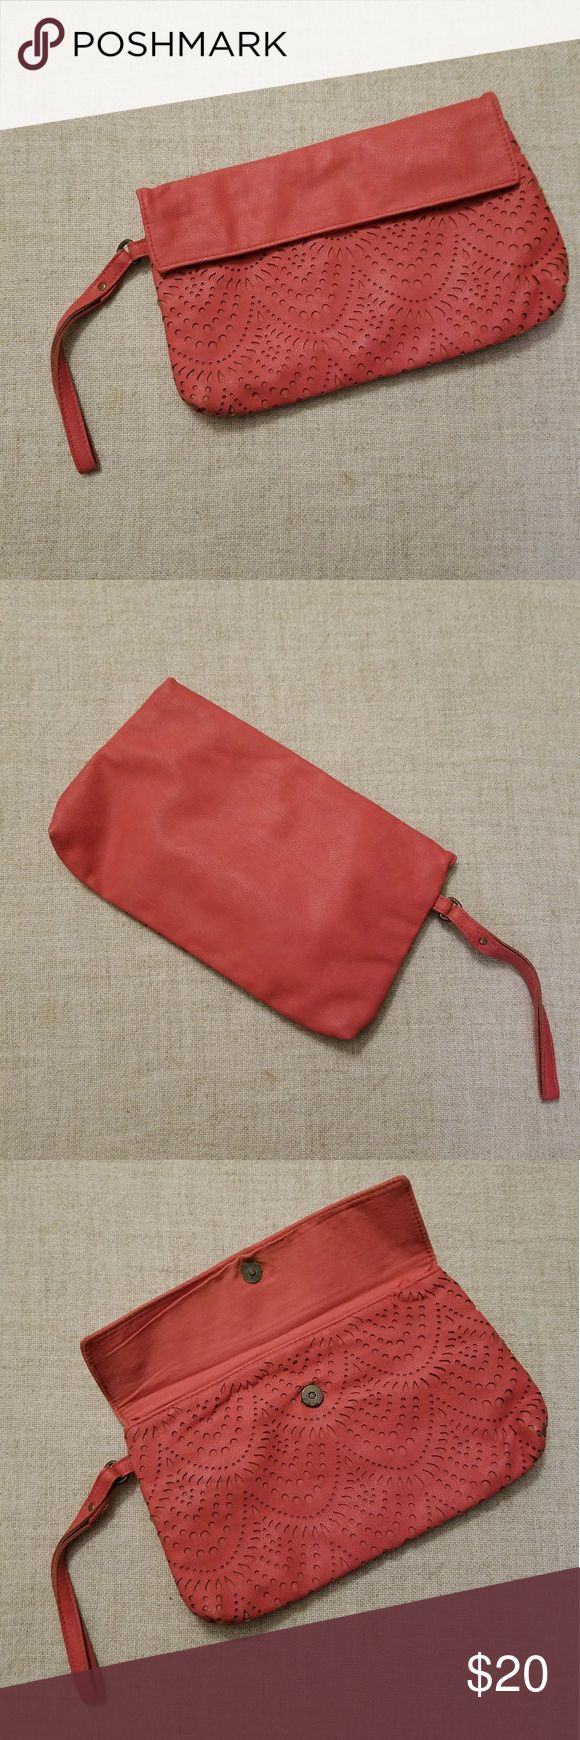 American Eagle Outfitters wristlet/ clutch purse. American Eagle Outfitters wristlet/ clutch purse in a coral color. Bohemian cut out detail on front, button closure, excellent used condition. American Eagle Outfitters Bags Clutches & Wristlets